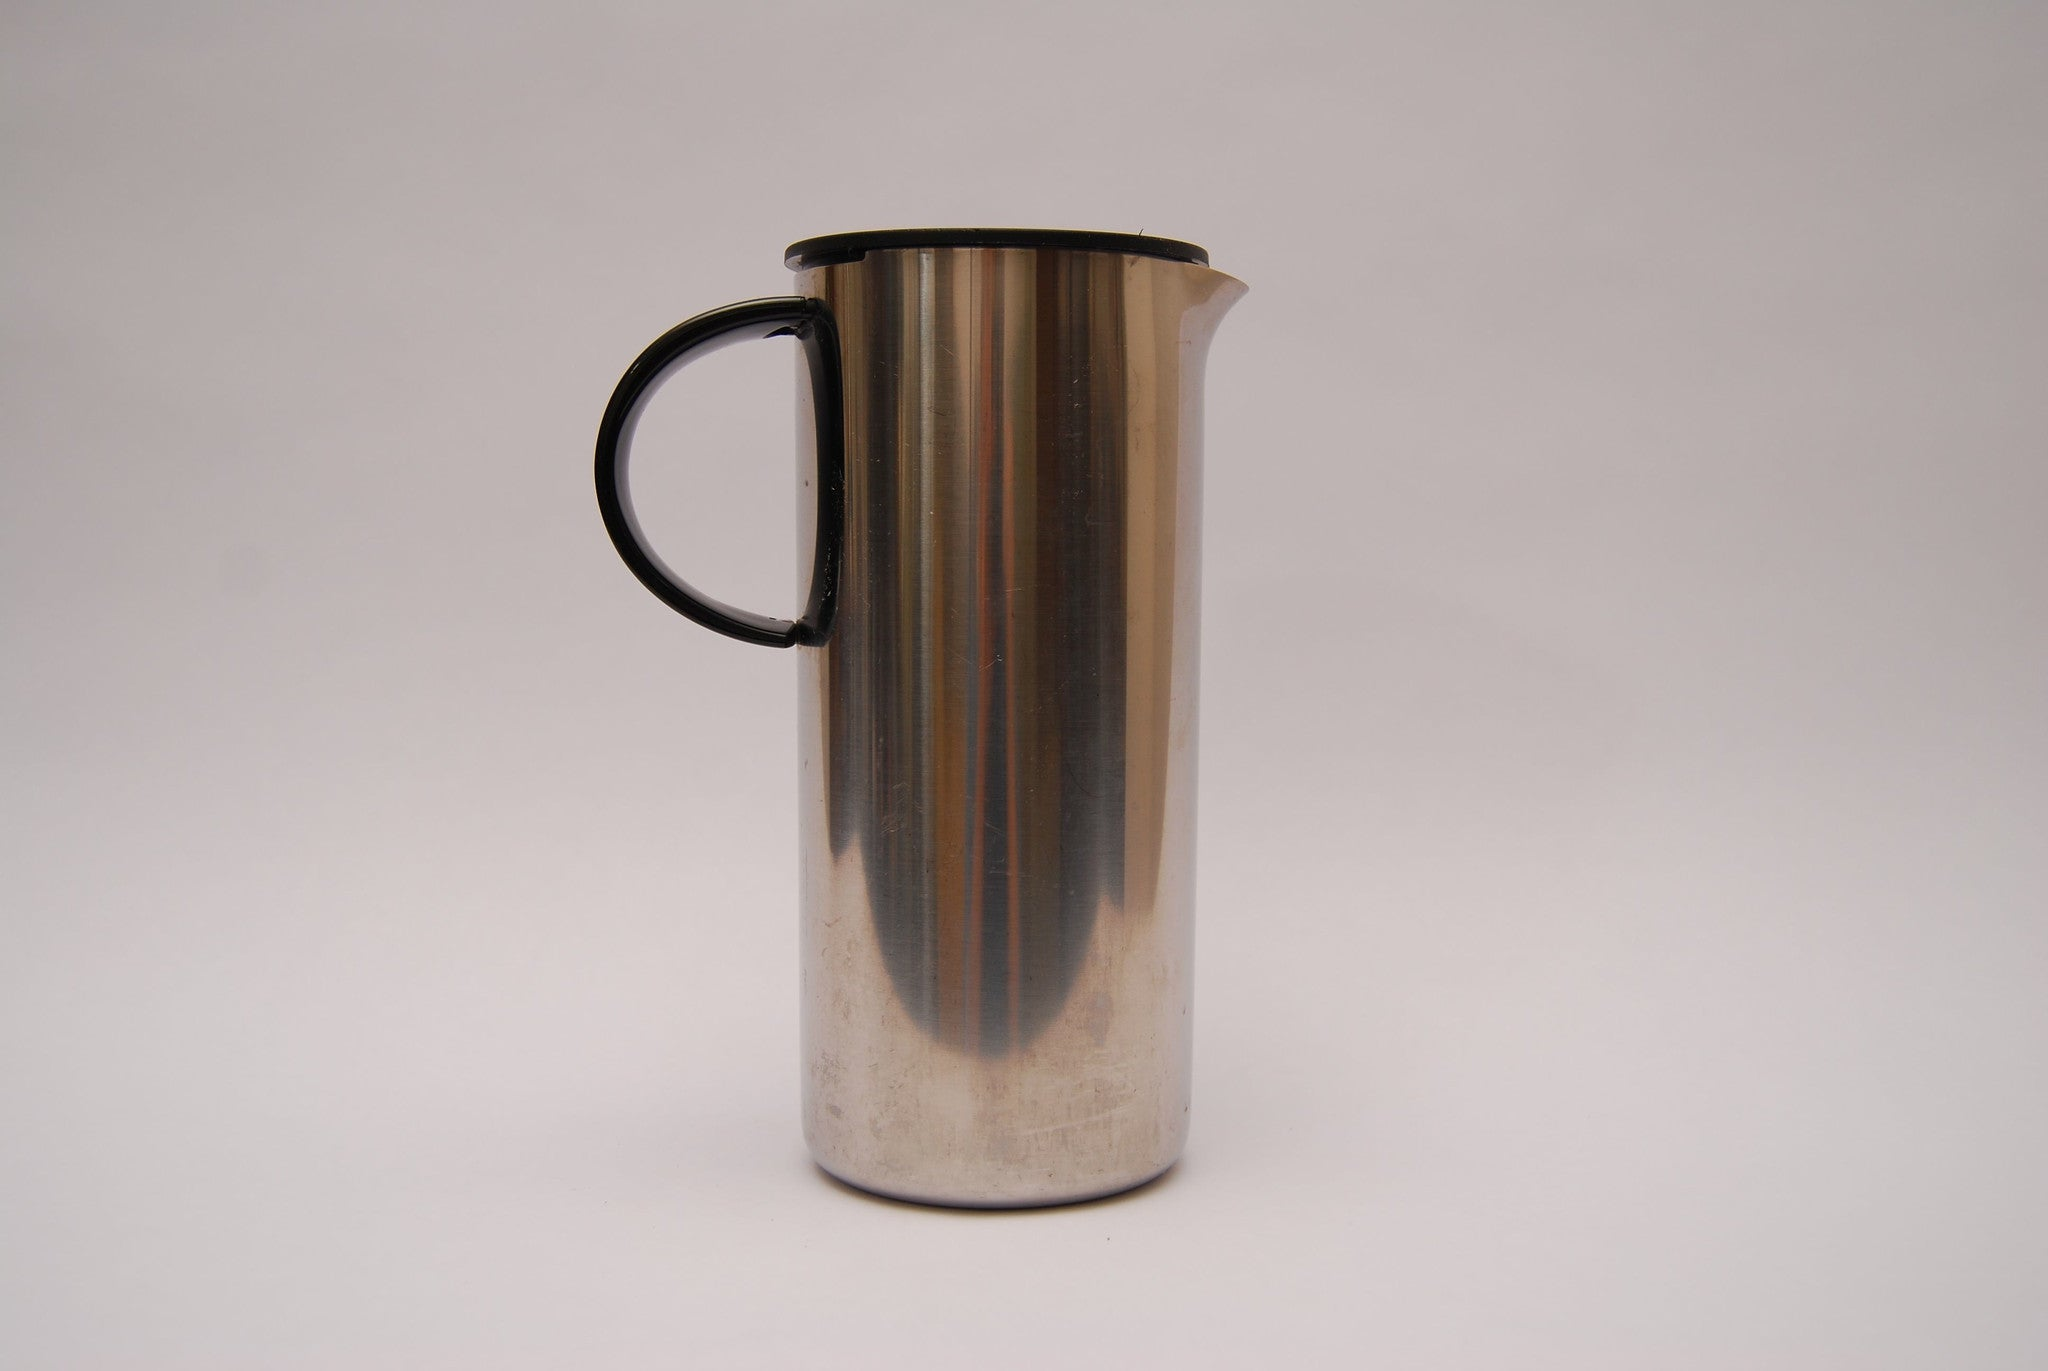 Stainless steel jug by Stelton